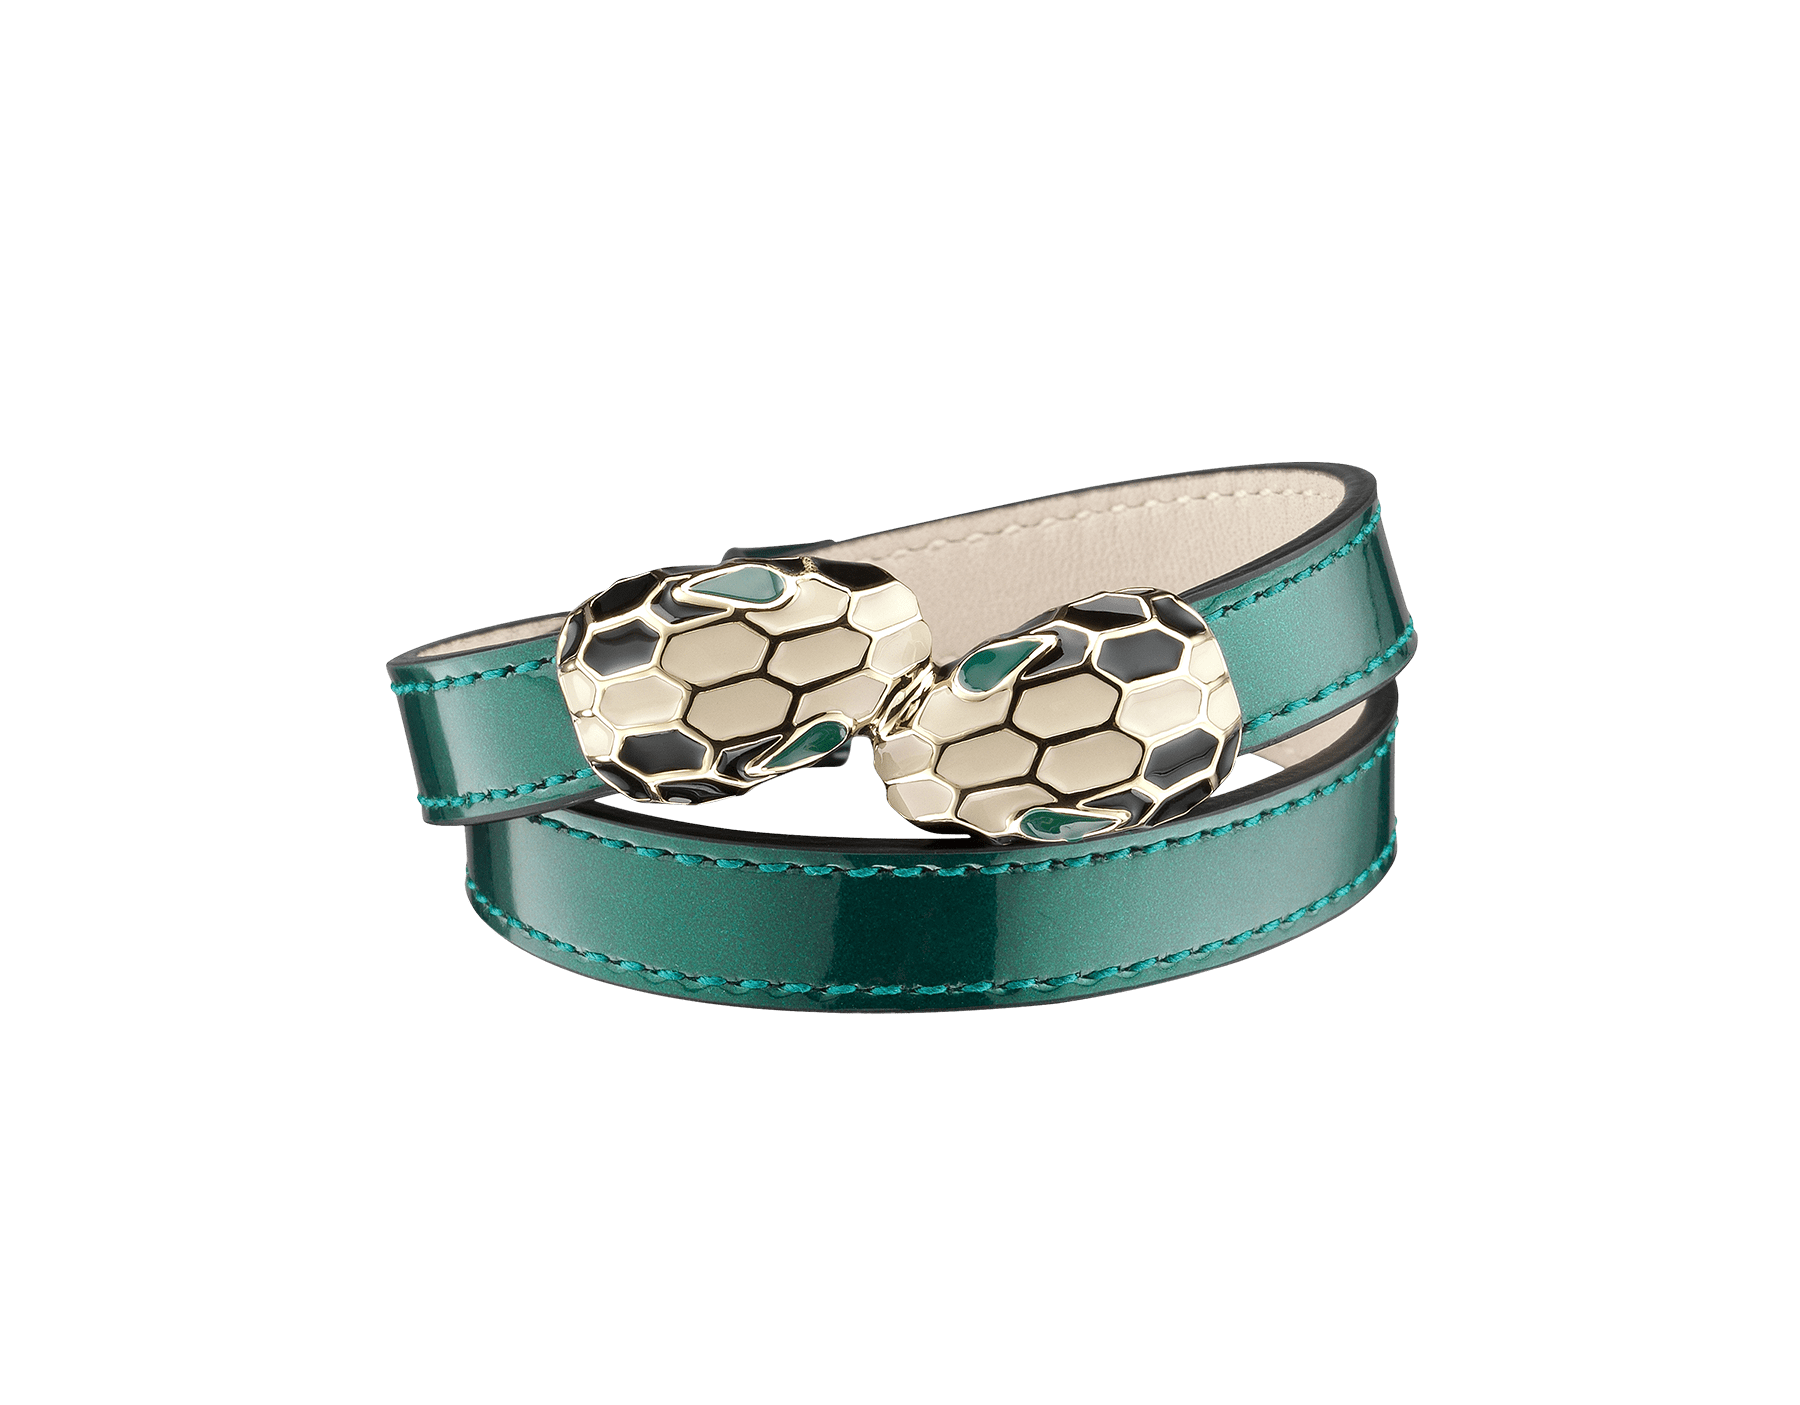 Multi-coiled bracelet in forest emerald brushed metallic calf leather. Brass light gold plated iconic contraire Serpenti heads in black and white enamel with green enamel eyes. MCSerp-BMCL-FE image 3